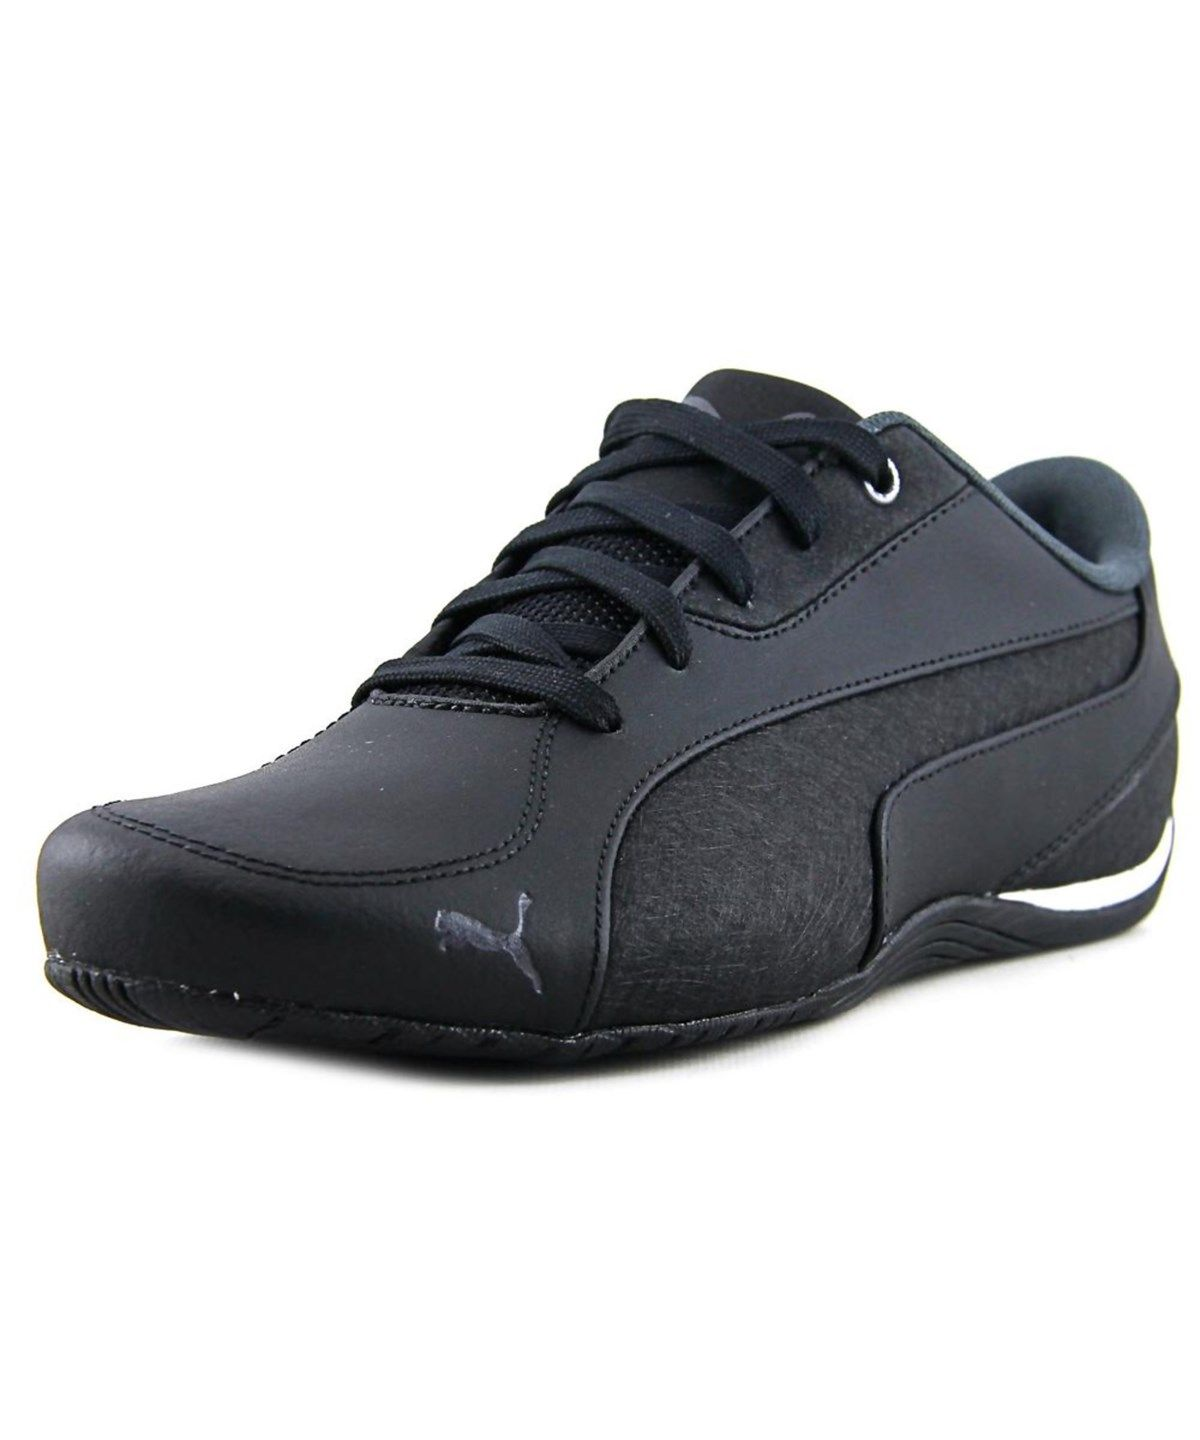 official photos d4009 ca527 PUMA Puma Drift Cat 5 Men Round Toe Leather Black Sneakers ...